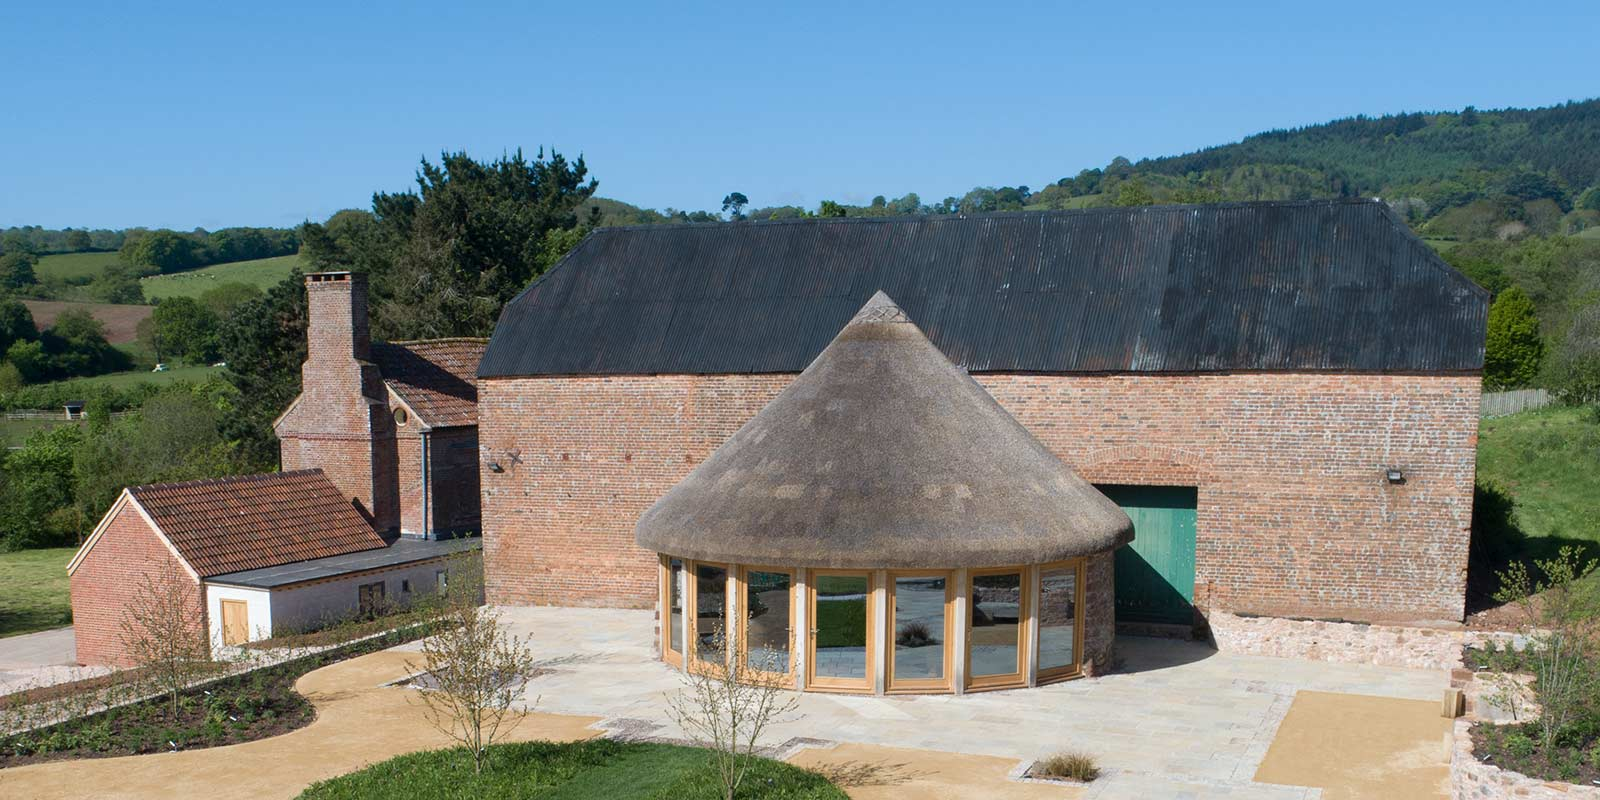 The round house – Brickhouse Vineyard, Devon